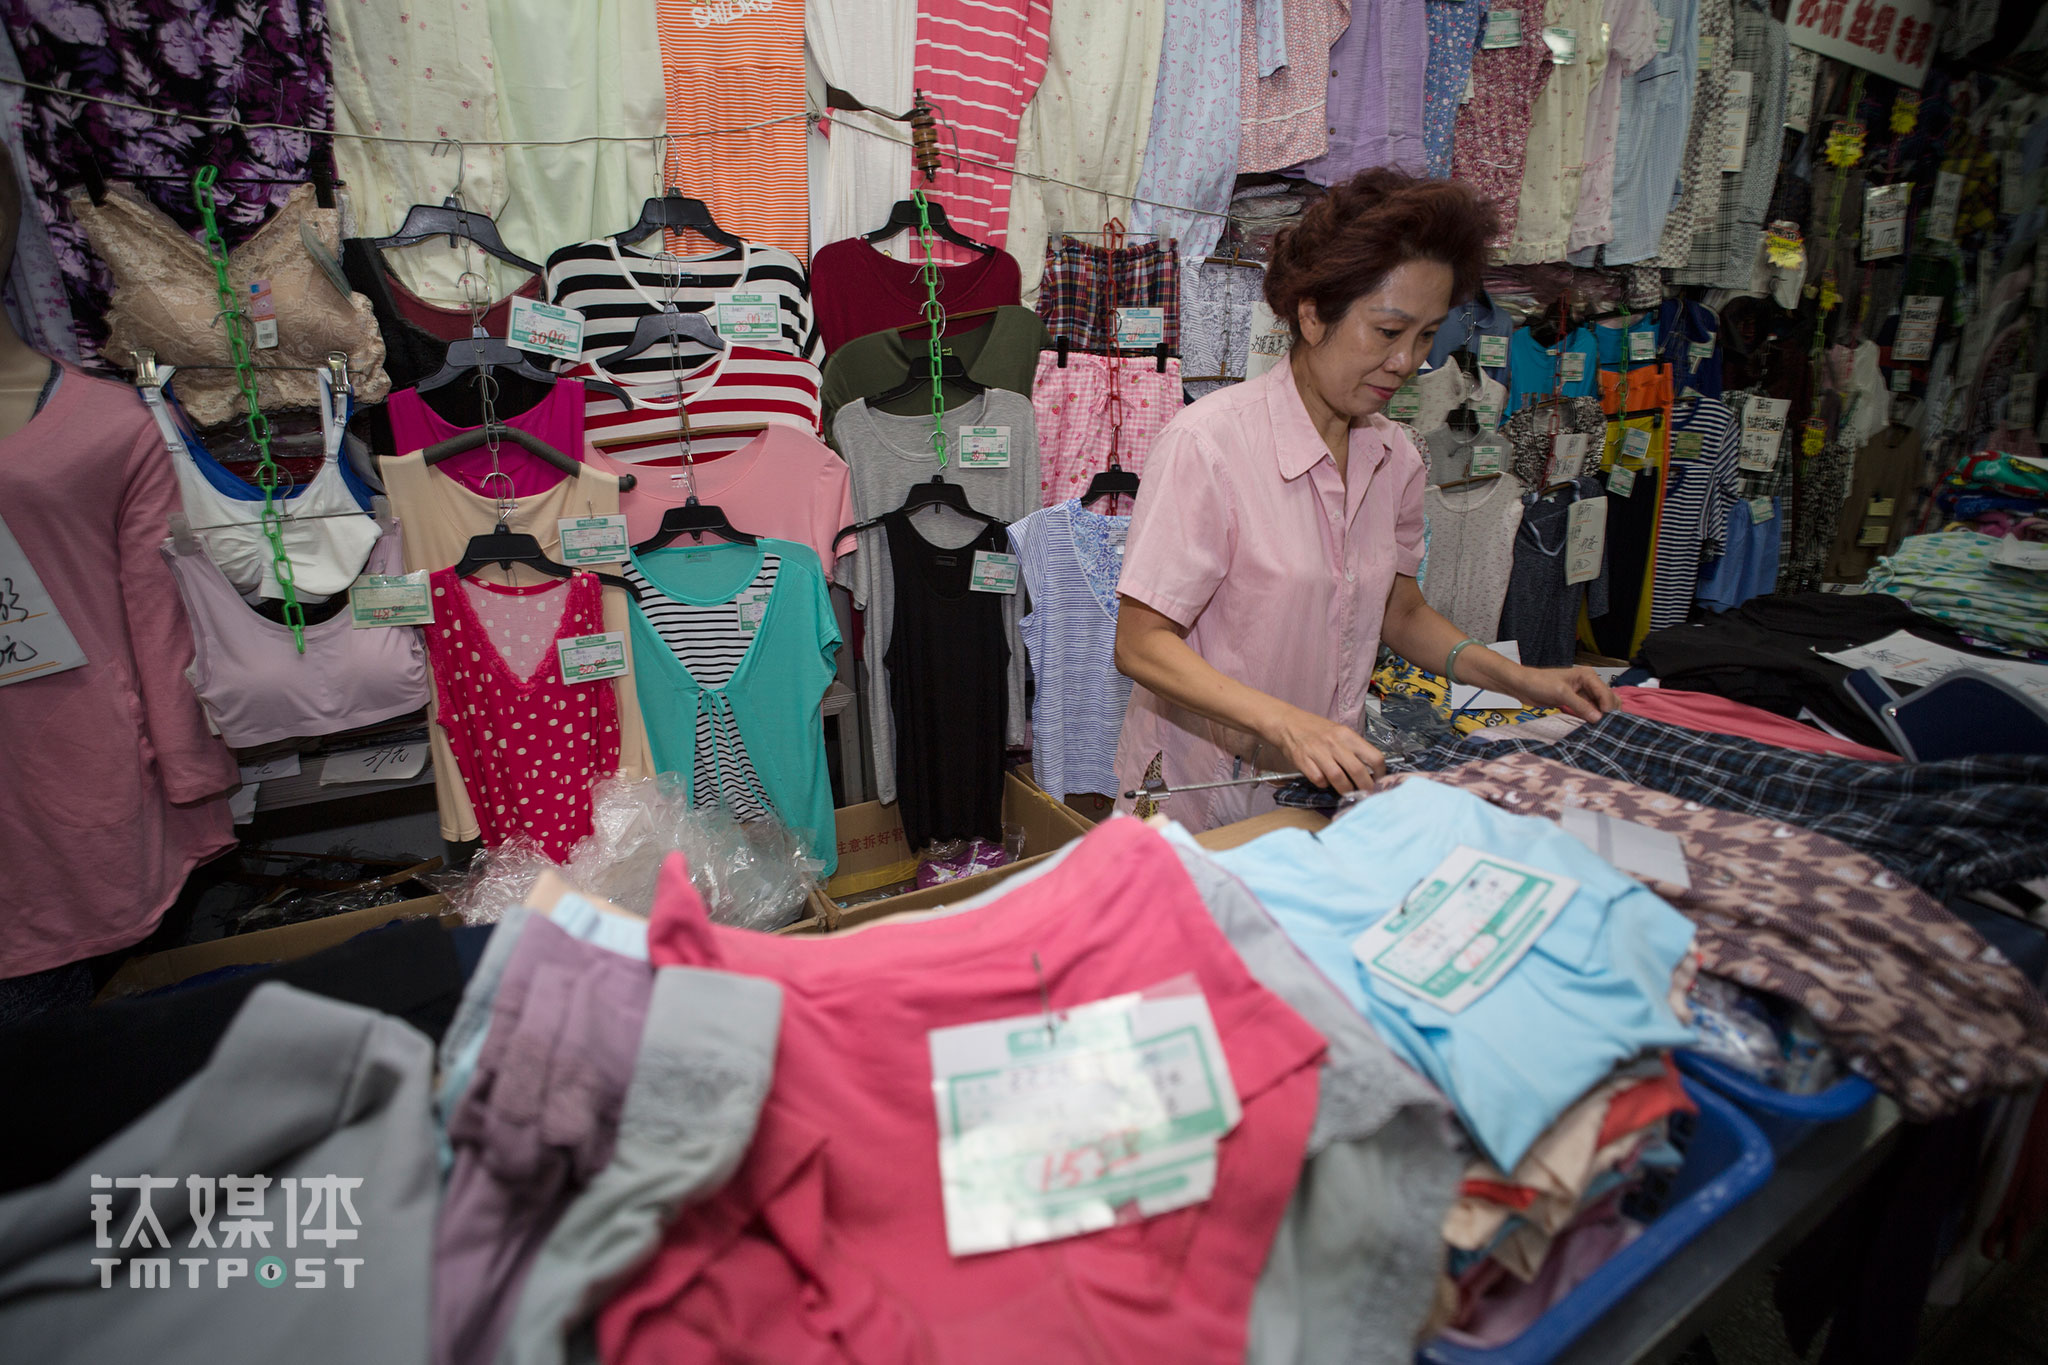 A customer approached Li Hong, wanting to order 30 customized extra-large underwear garments for a family member ill in bed. Li Hong asked the customer to bring an underpants and shirt as a reference since that it's not convenient for that family member to come over and got measurements. Once the color and size were decided, Li Hong contacted a long-time supplier whom she has been working with for over 30 years. The supplier would then finish making the order quickly. Under normal circumstances, Dafang would deliver the products to customers that aren't able to get the products themselves without charging extra.